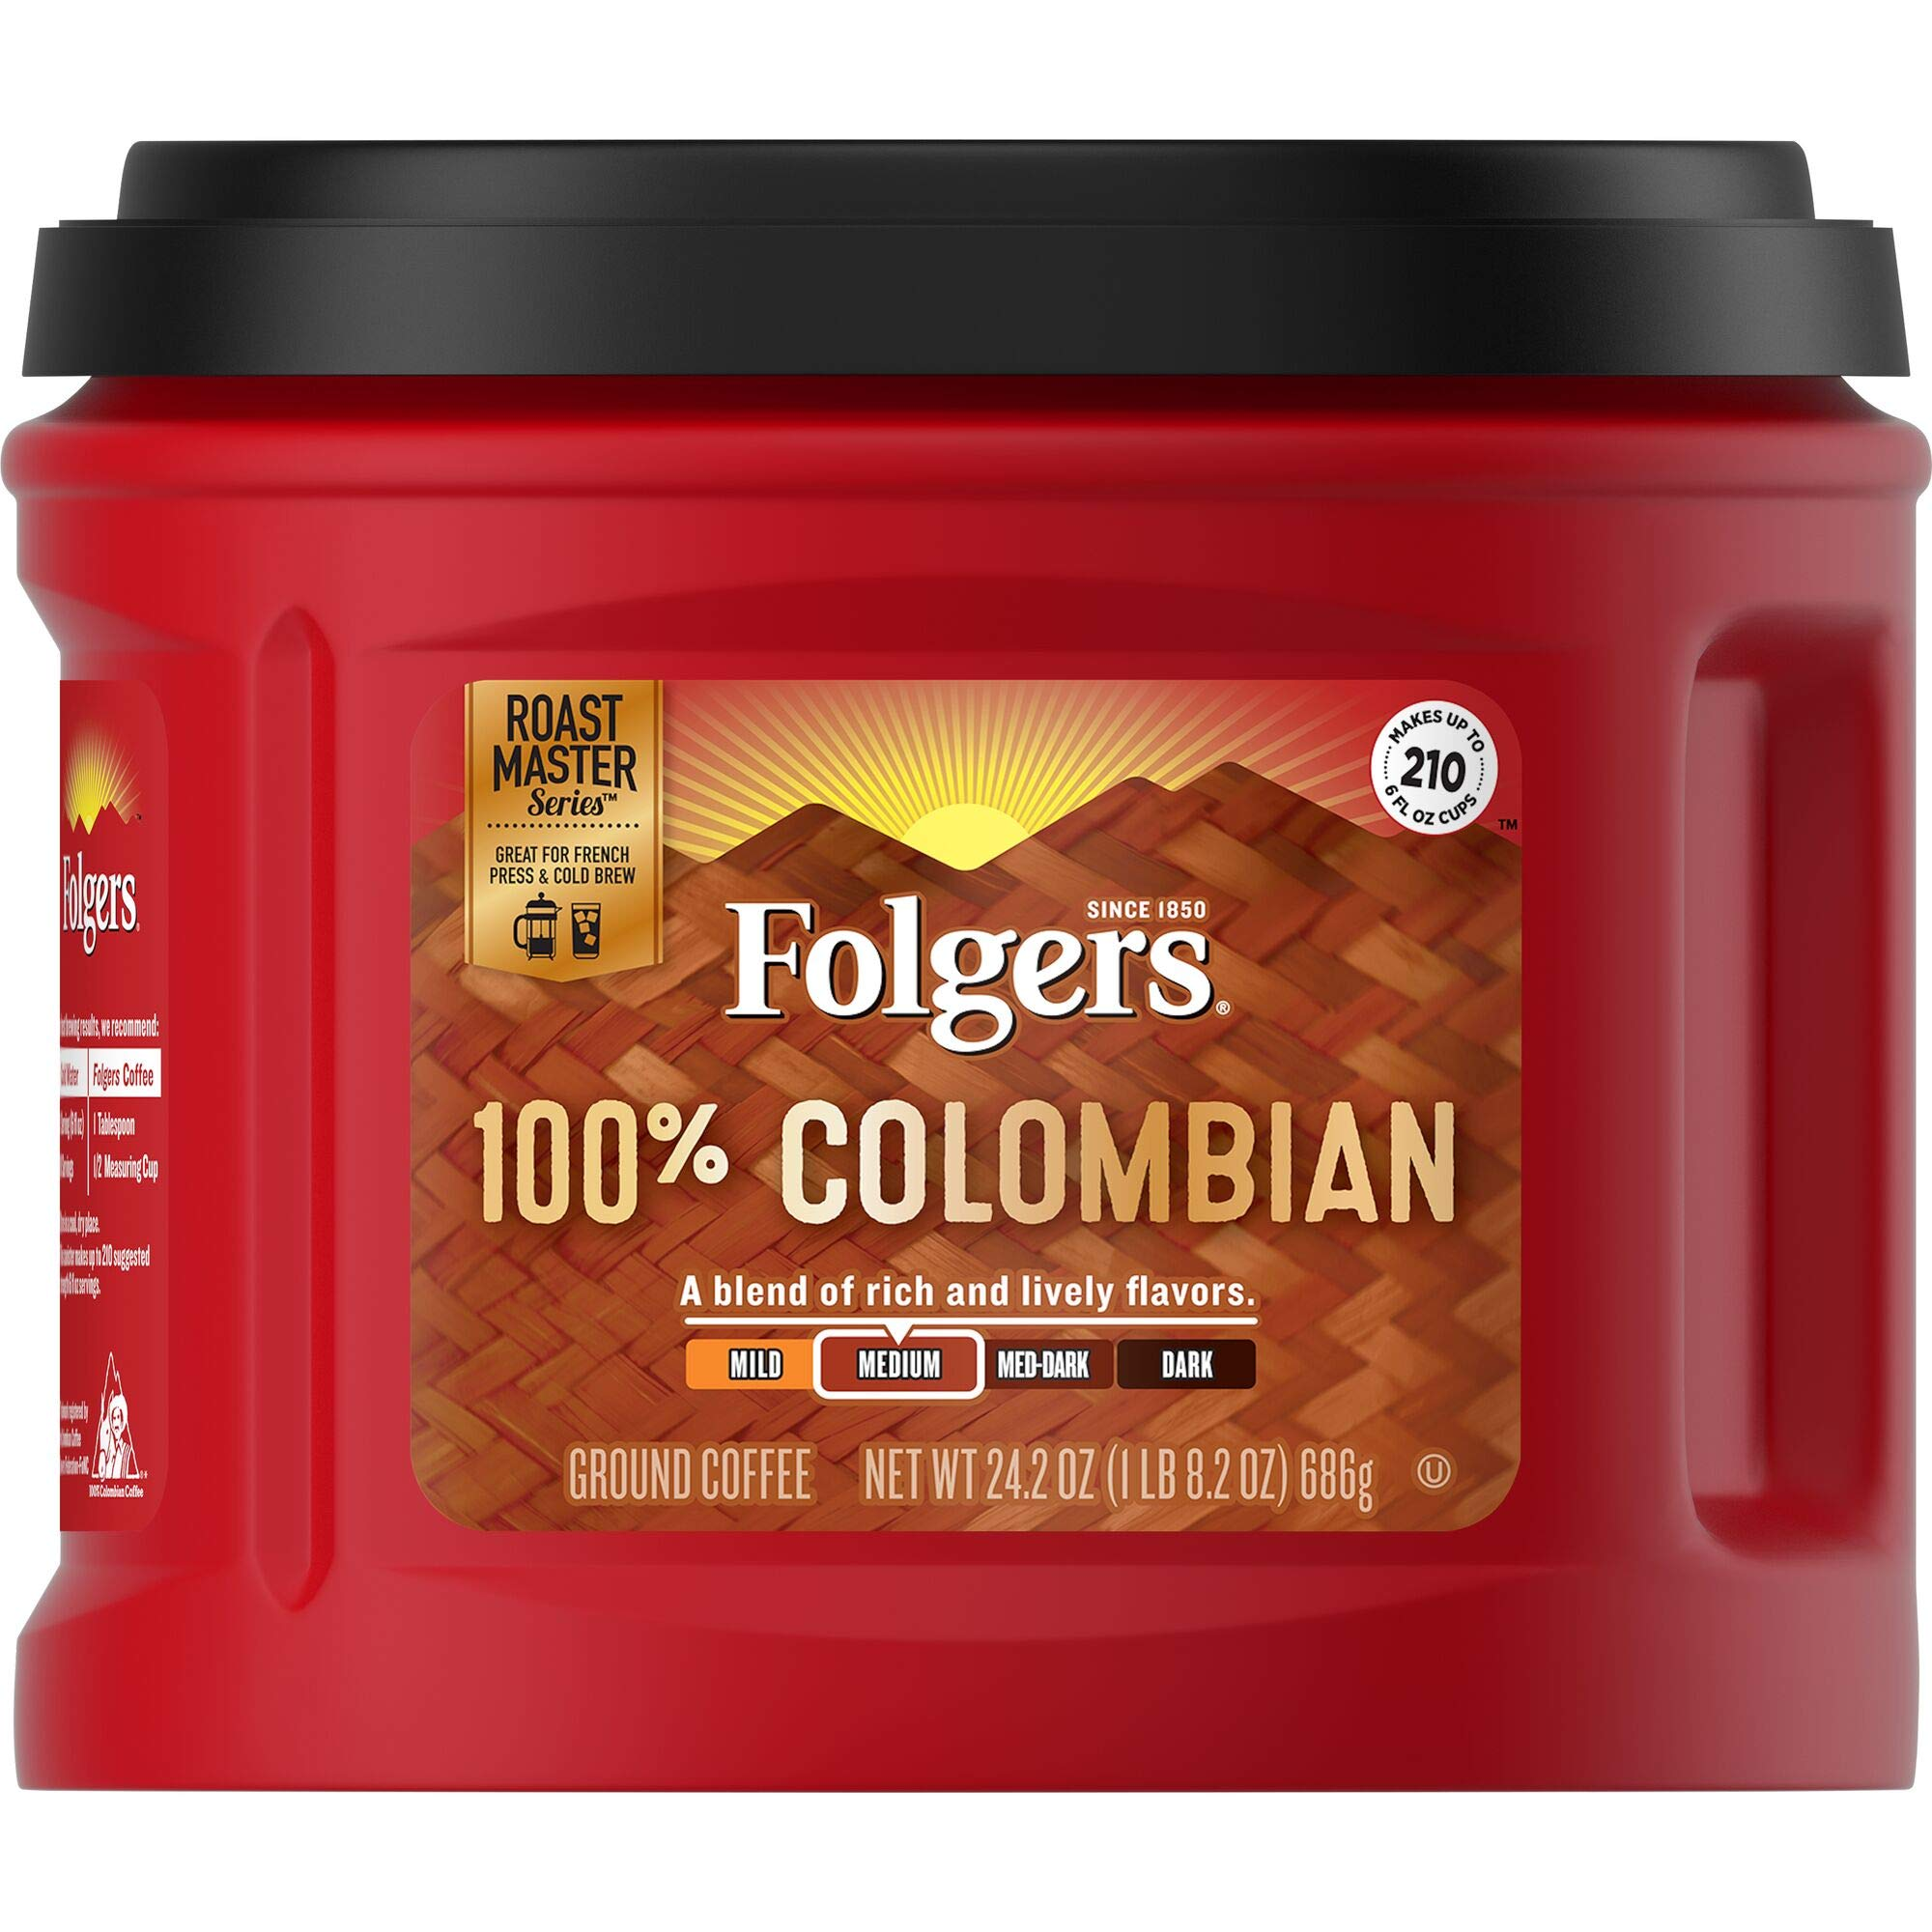 Folgers 100% Colombian Ground Coffee, Medium Roast, 24.2 Ounce, Pack of 6 by Folgers